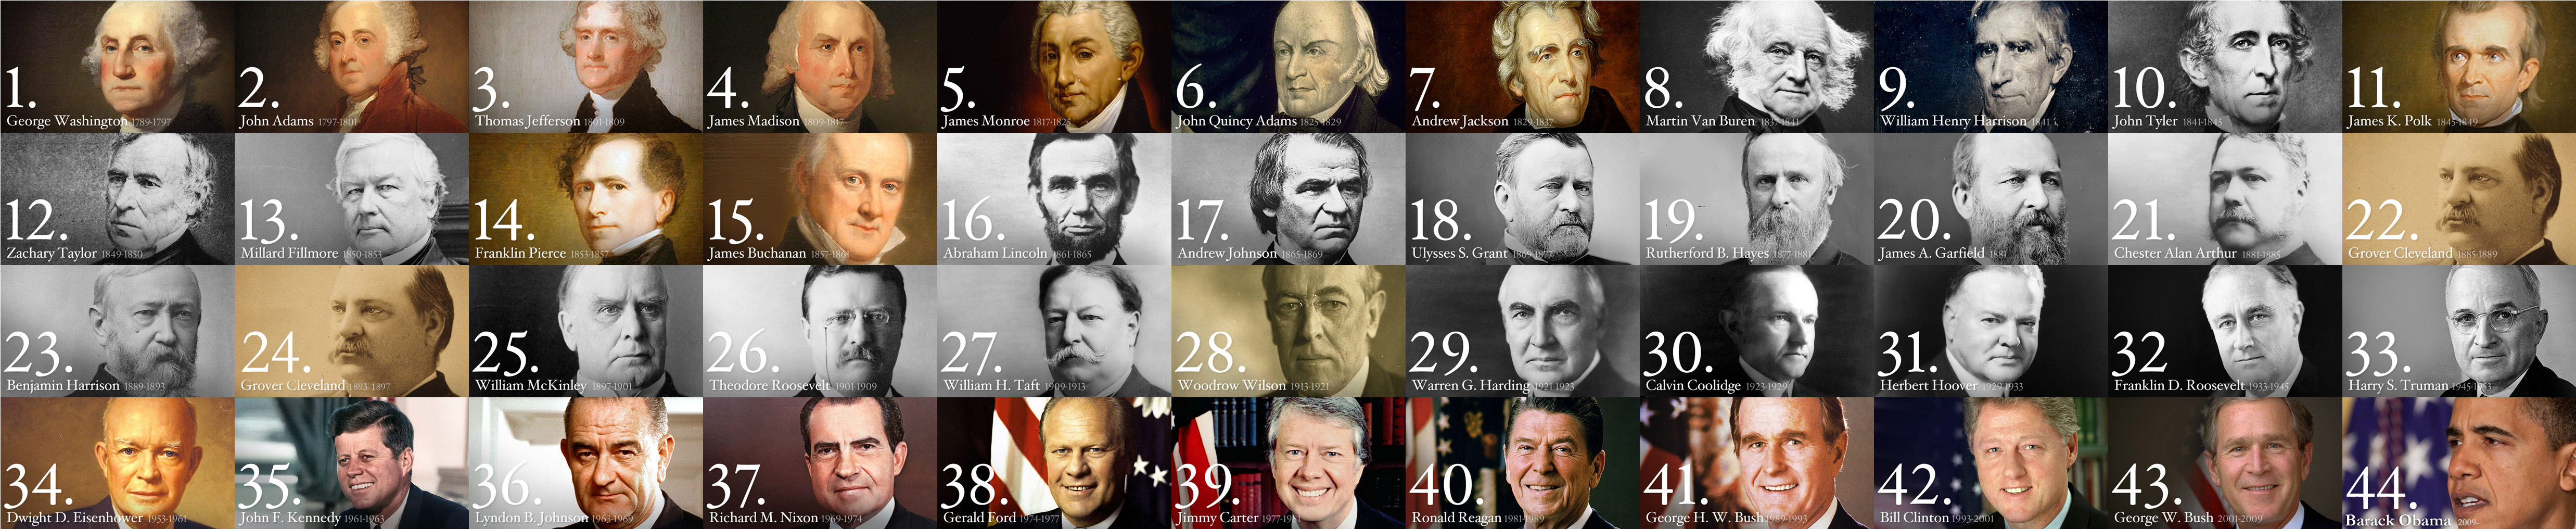 American Presidents Quiz Part Two Striving For Reality